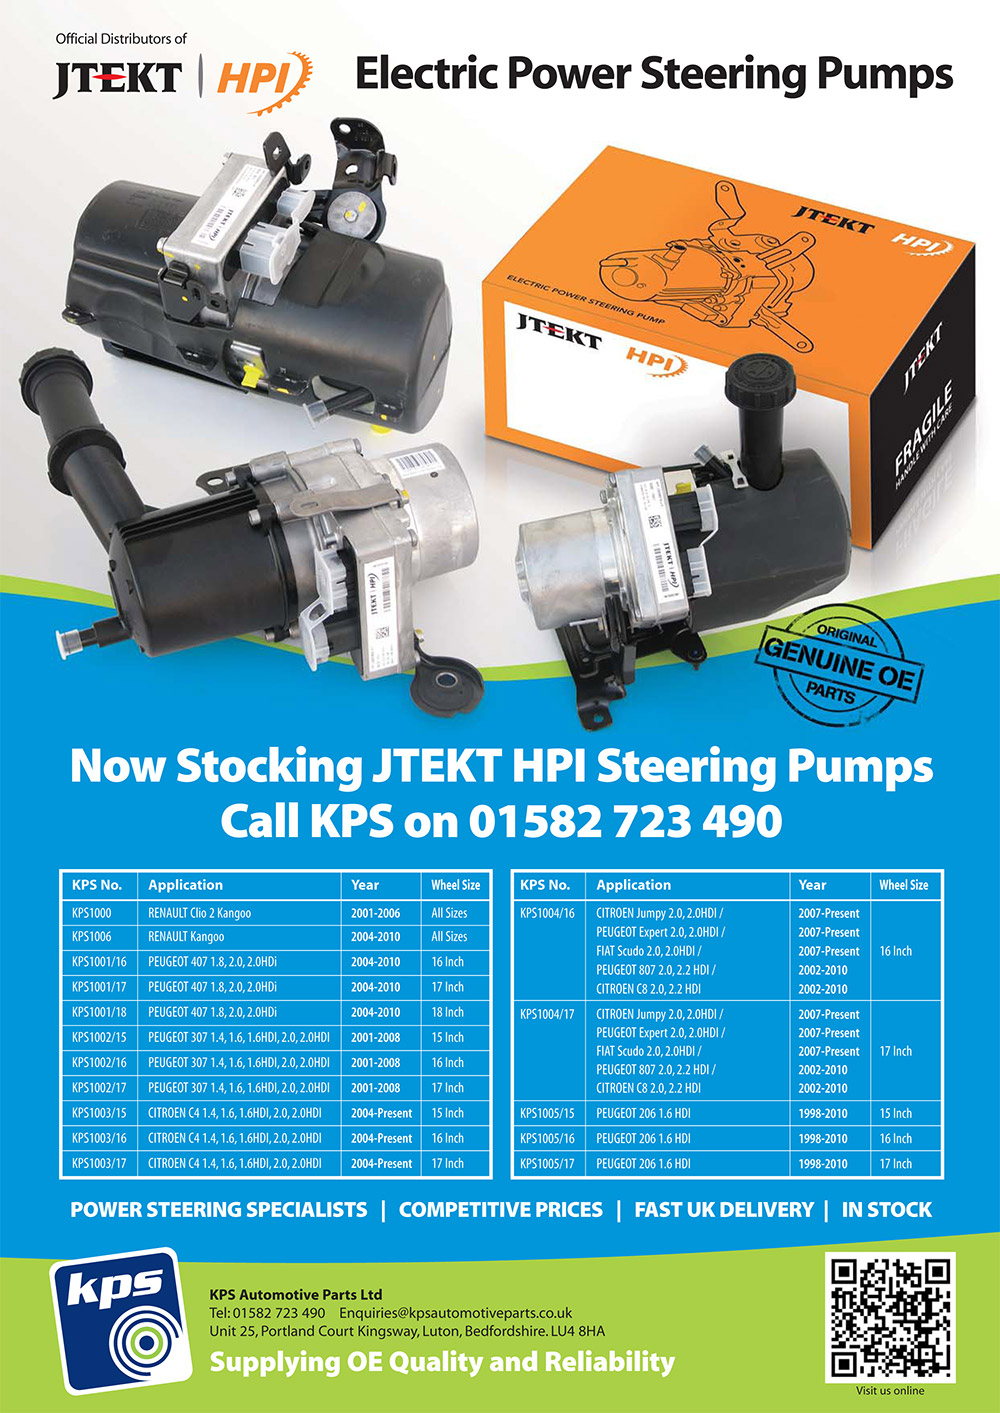 JTEKY Steering Pump Applications